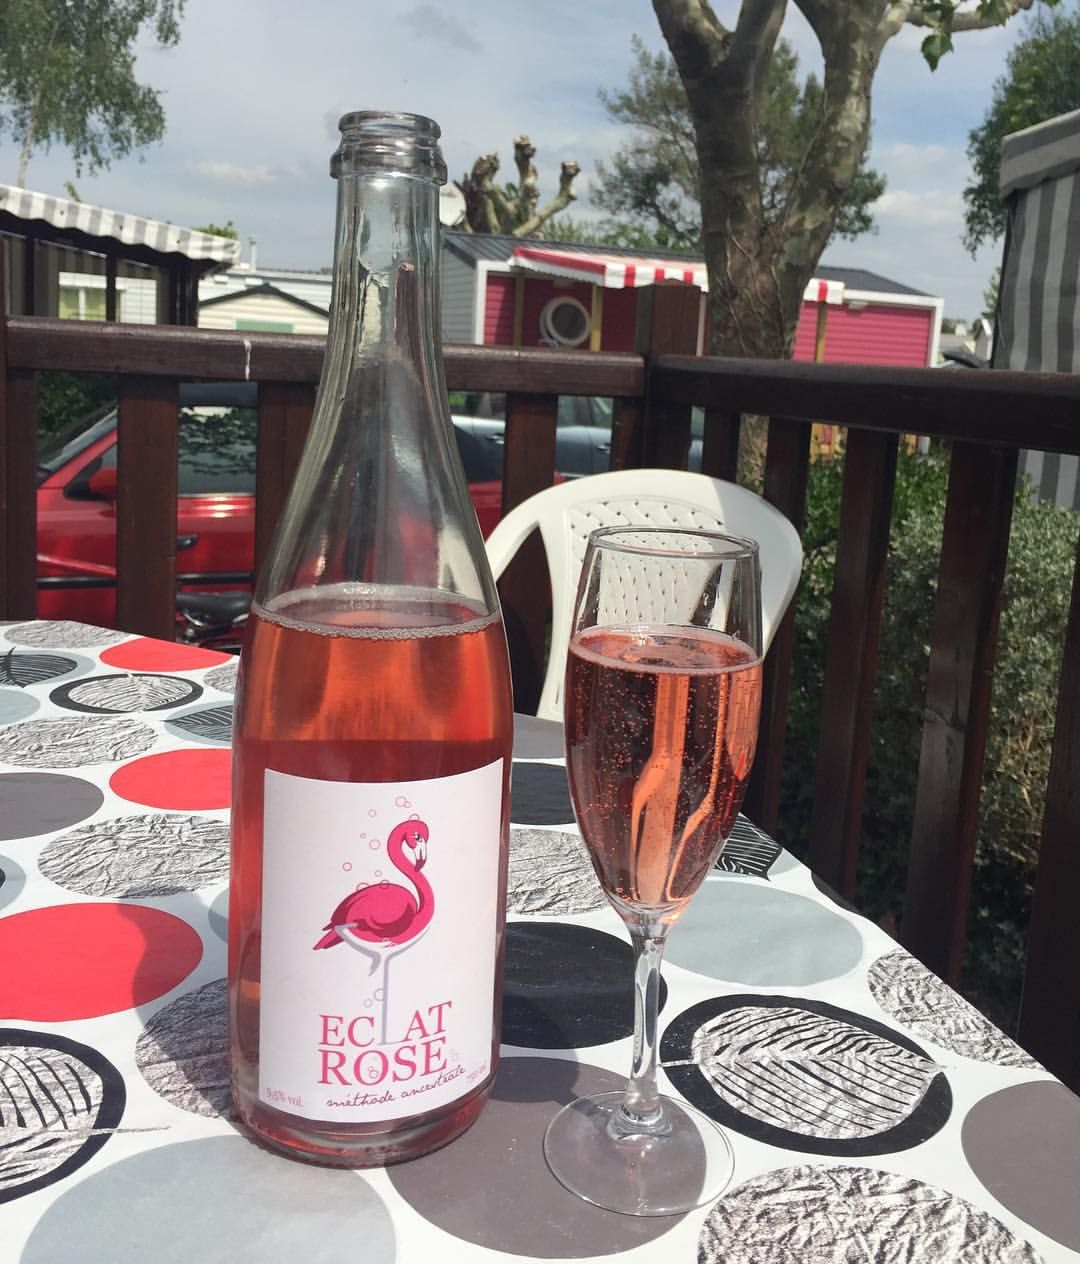 Discovering A New Summers Day Drink Happiness Pinkbubbles Caravanlife France Frenchwine Eclatrose Vendee Simp French Wine Pink Bubbles Alcoholic Drinks